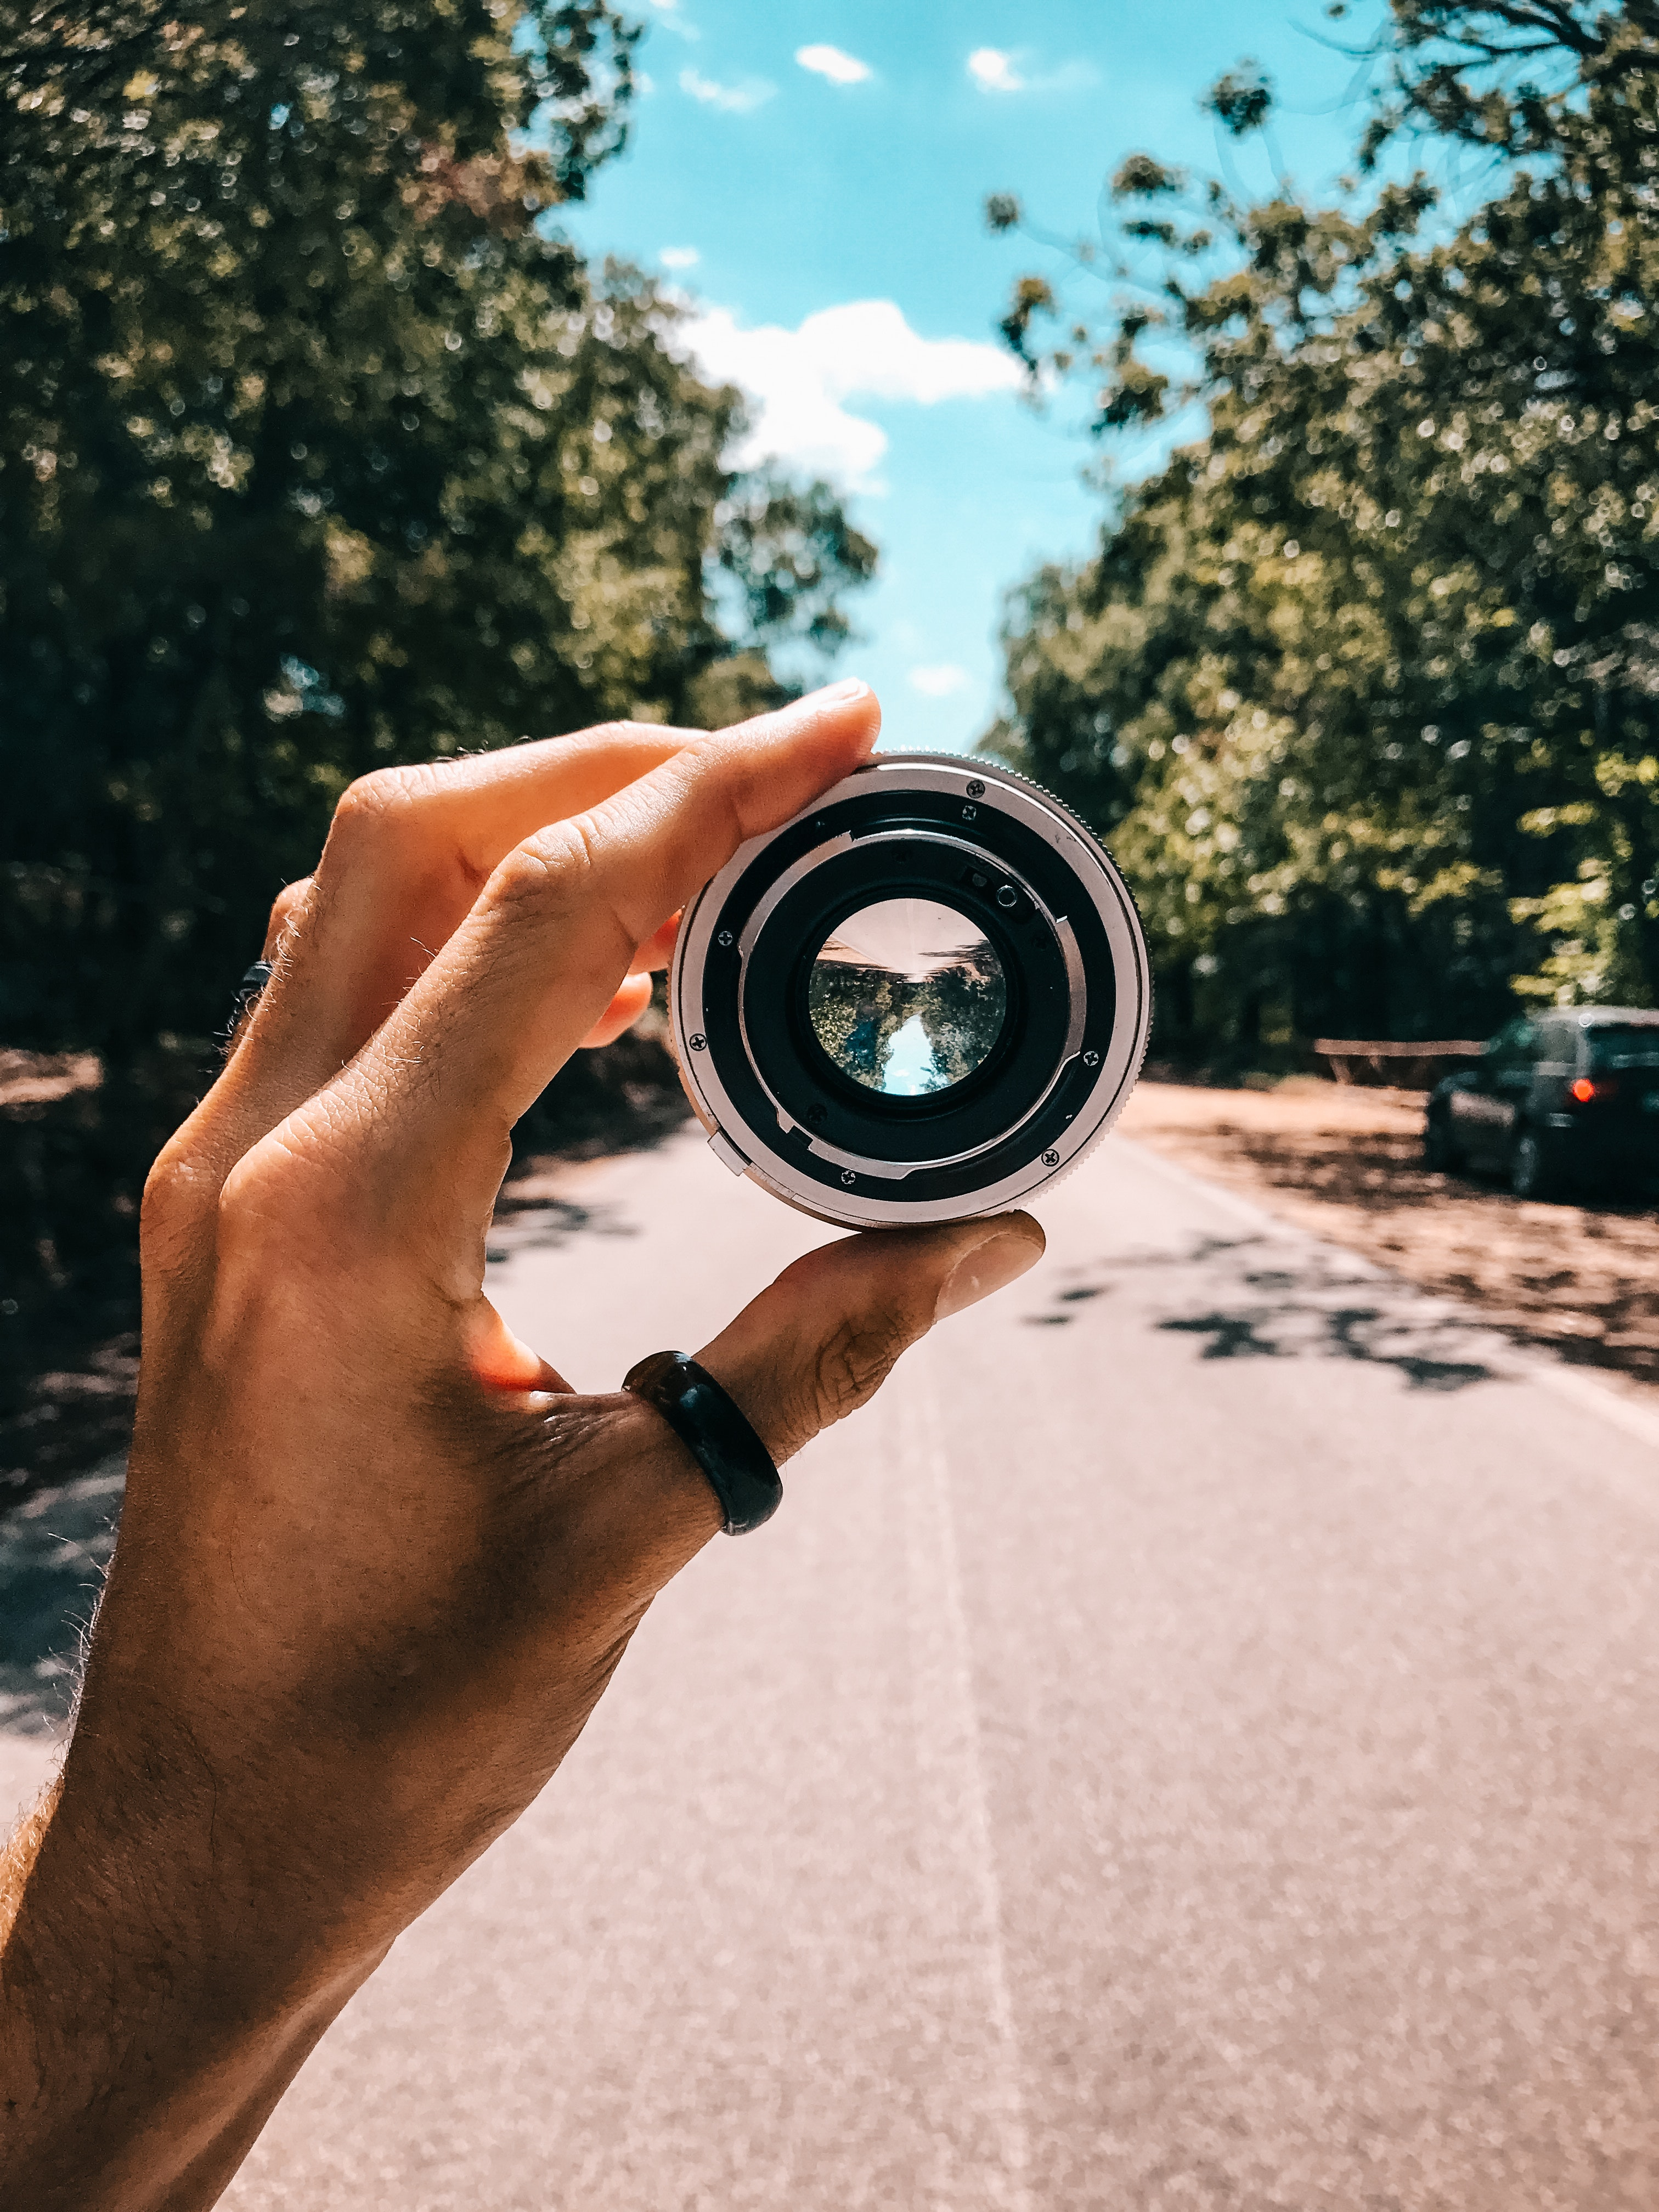 Person holding camera lens in the middle of street under blue sky photo